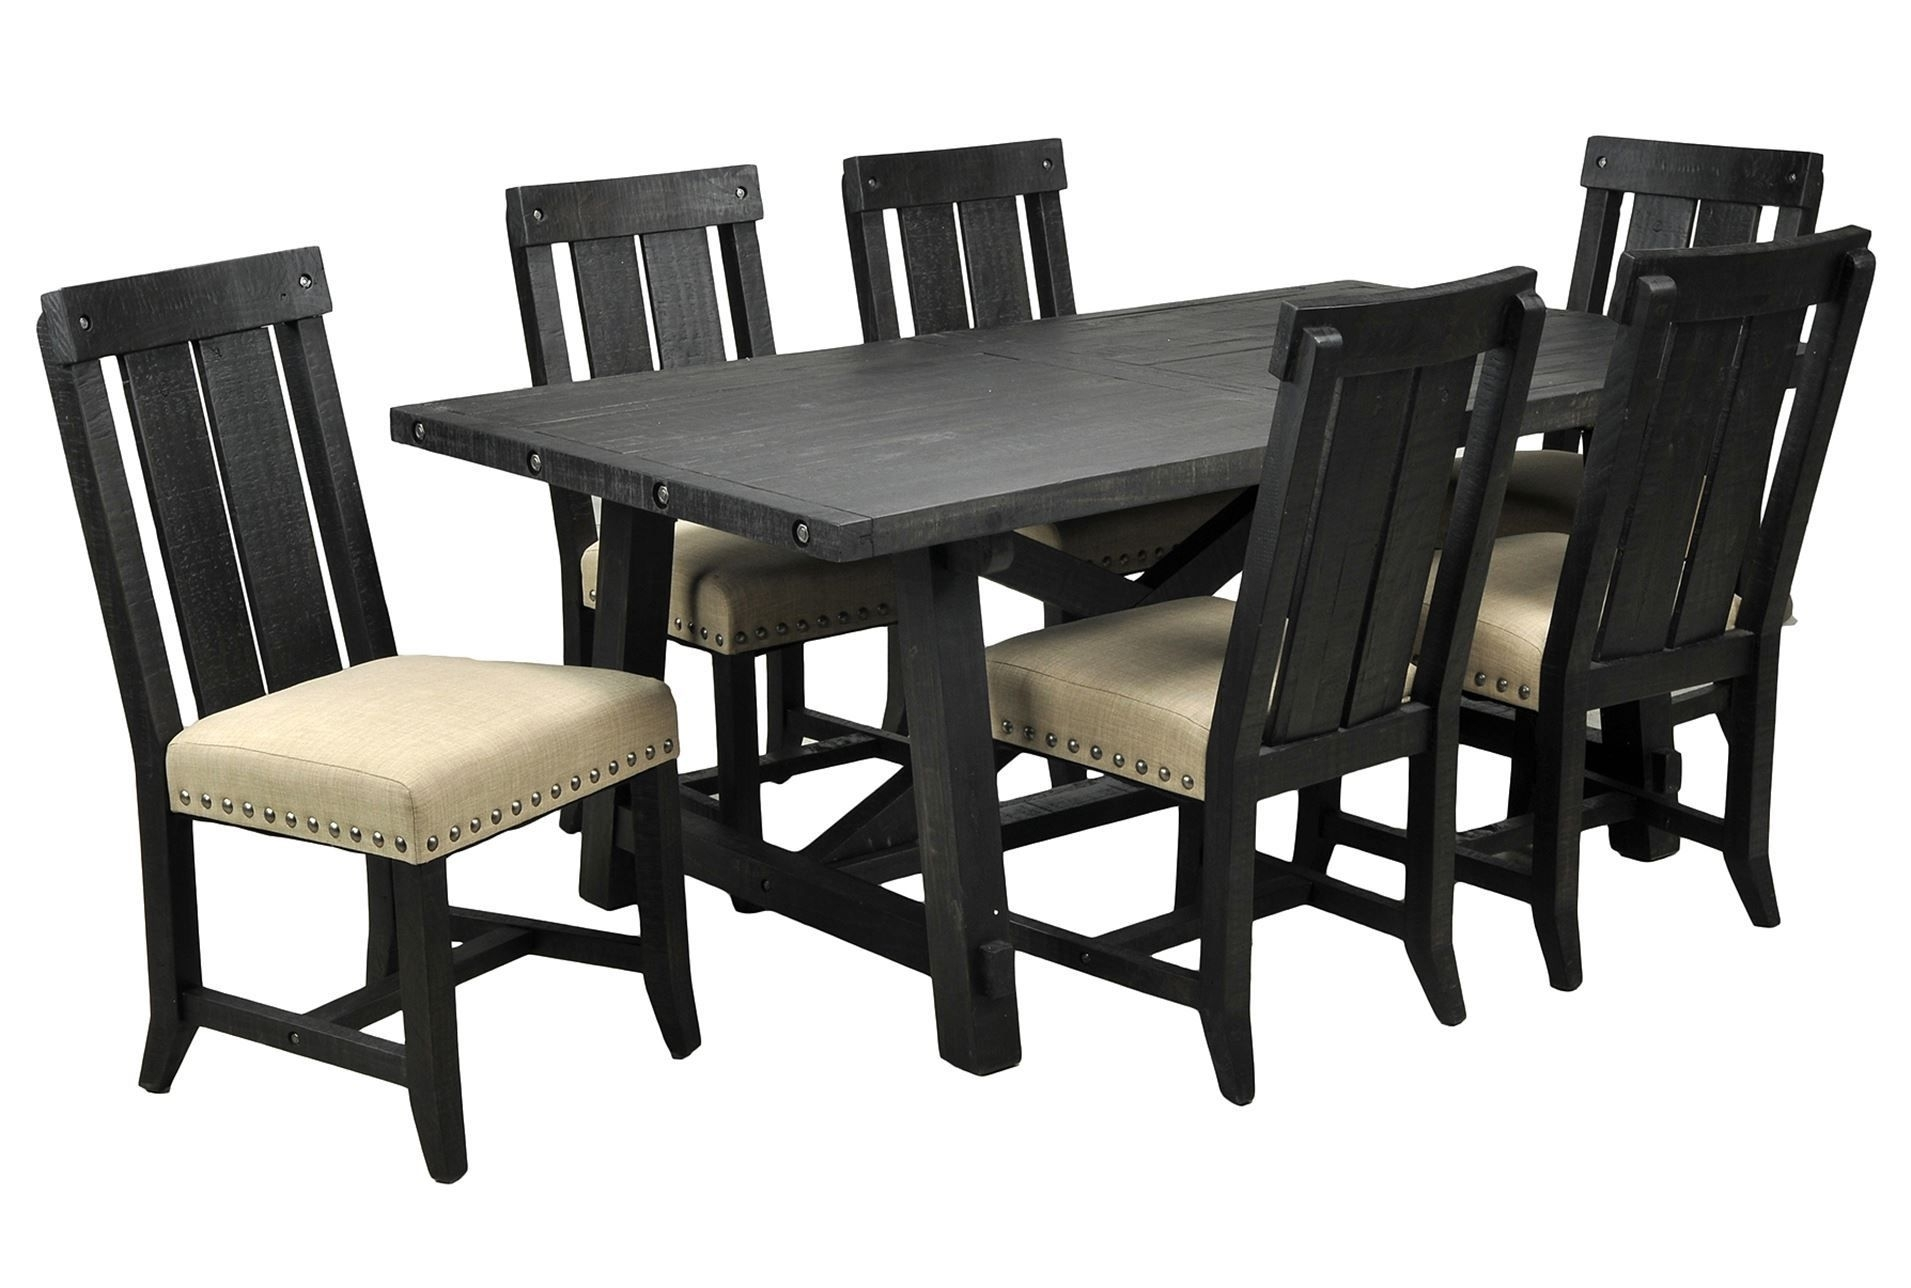 Jaxon 7 Piece Rectangle Dining Set W/wood Chairs | For The House I Regarding Latest Jaxon 5 Piece Extension Counter Sets With Wood Stools (Photo 7 of 20)